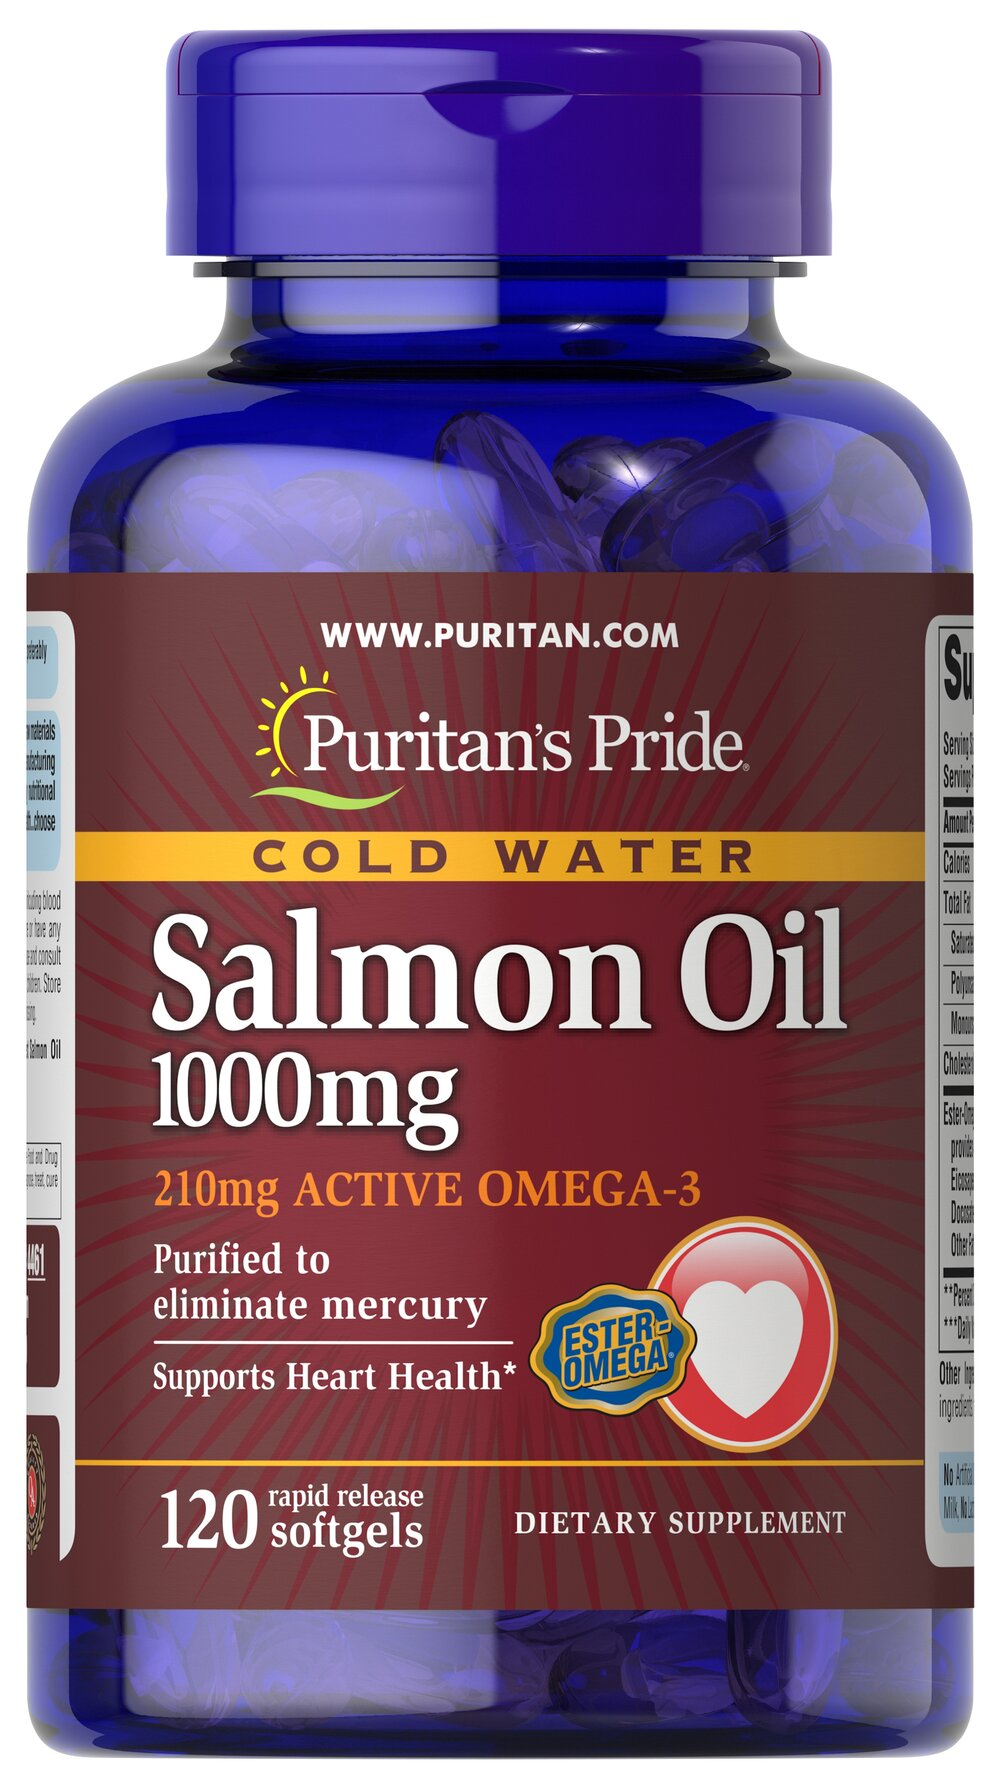 Omega-3 Salmon Oil 1000 mg (210 mg Active Omega-3)  120 Softgels 1000 mg $16.09